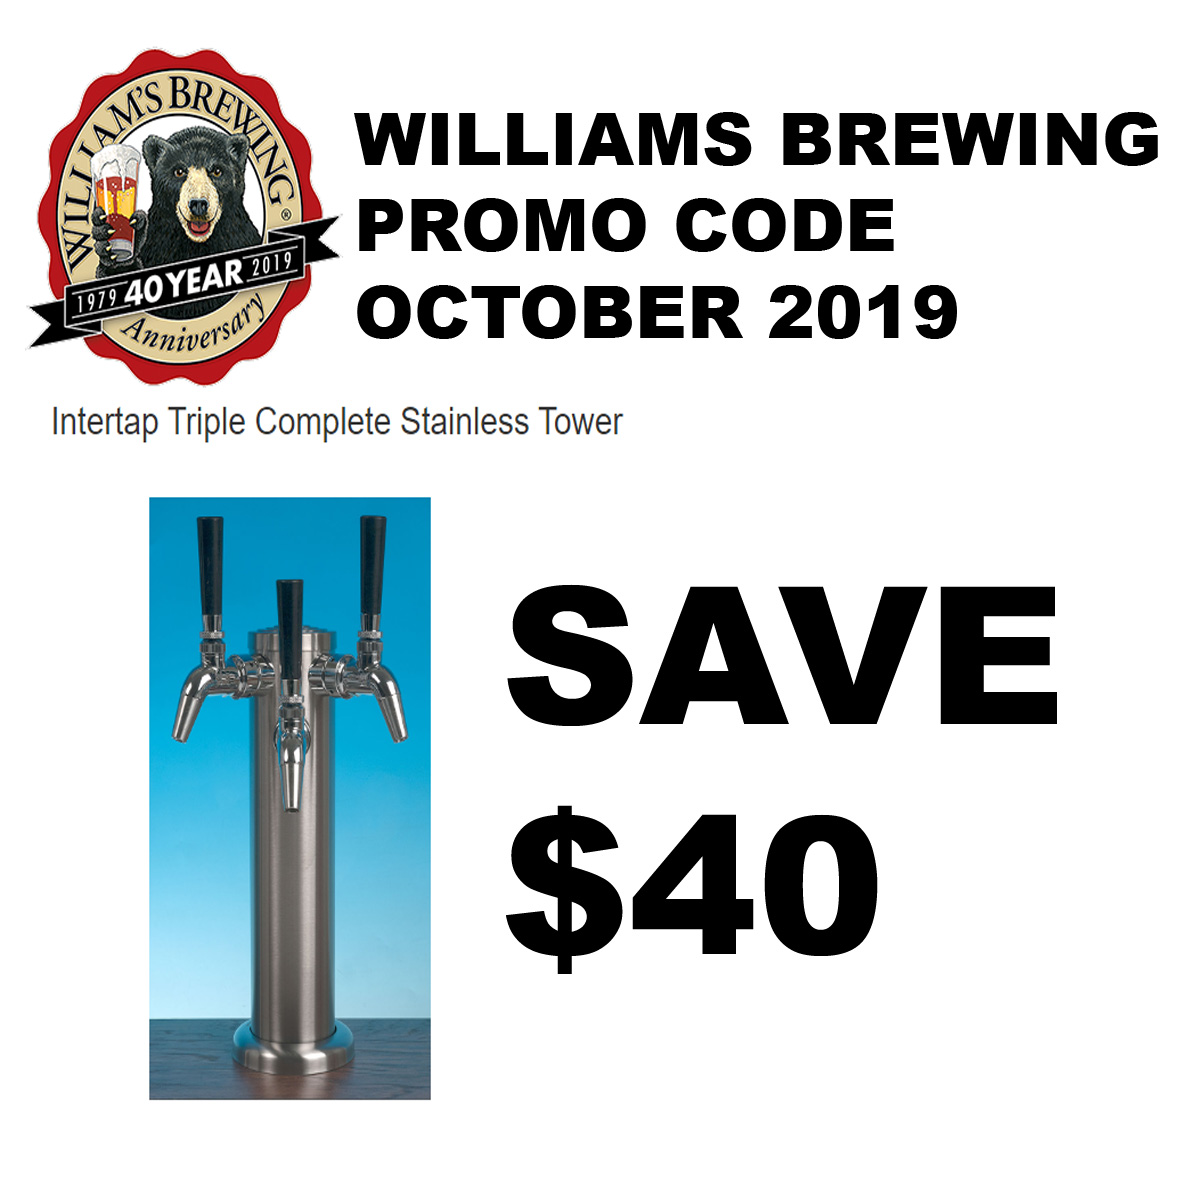 Williams Brewing Have $40 on a complete 3 Tap Stainless Tower With This WilliamsBrewing.com October Promo Code Coupon Code